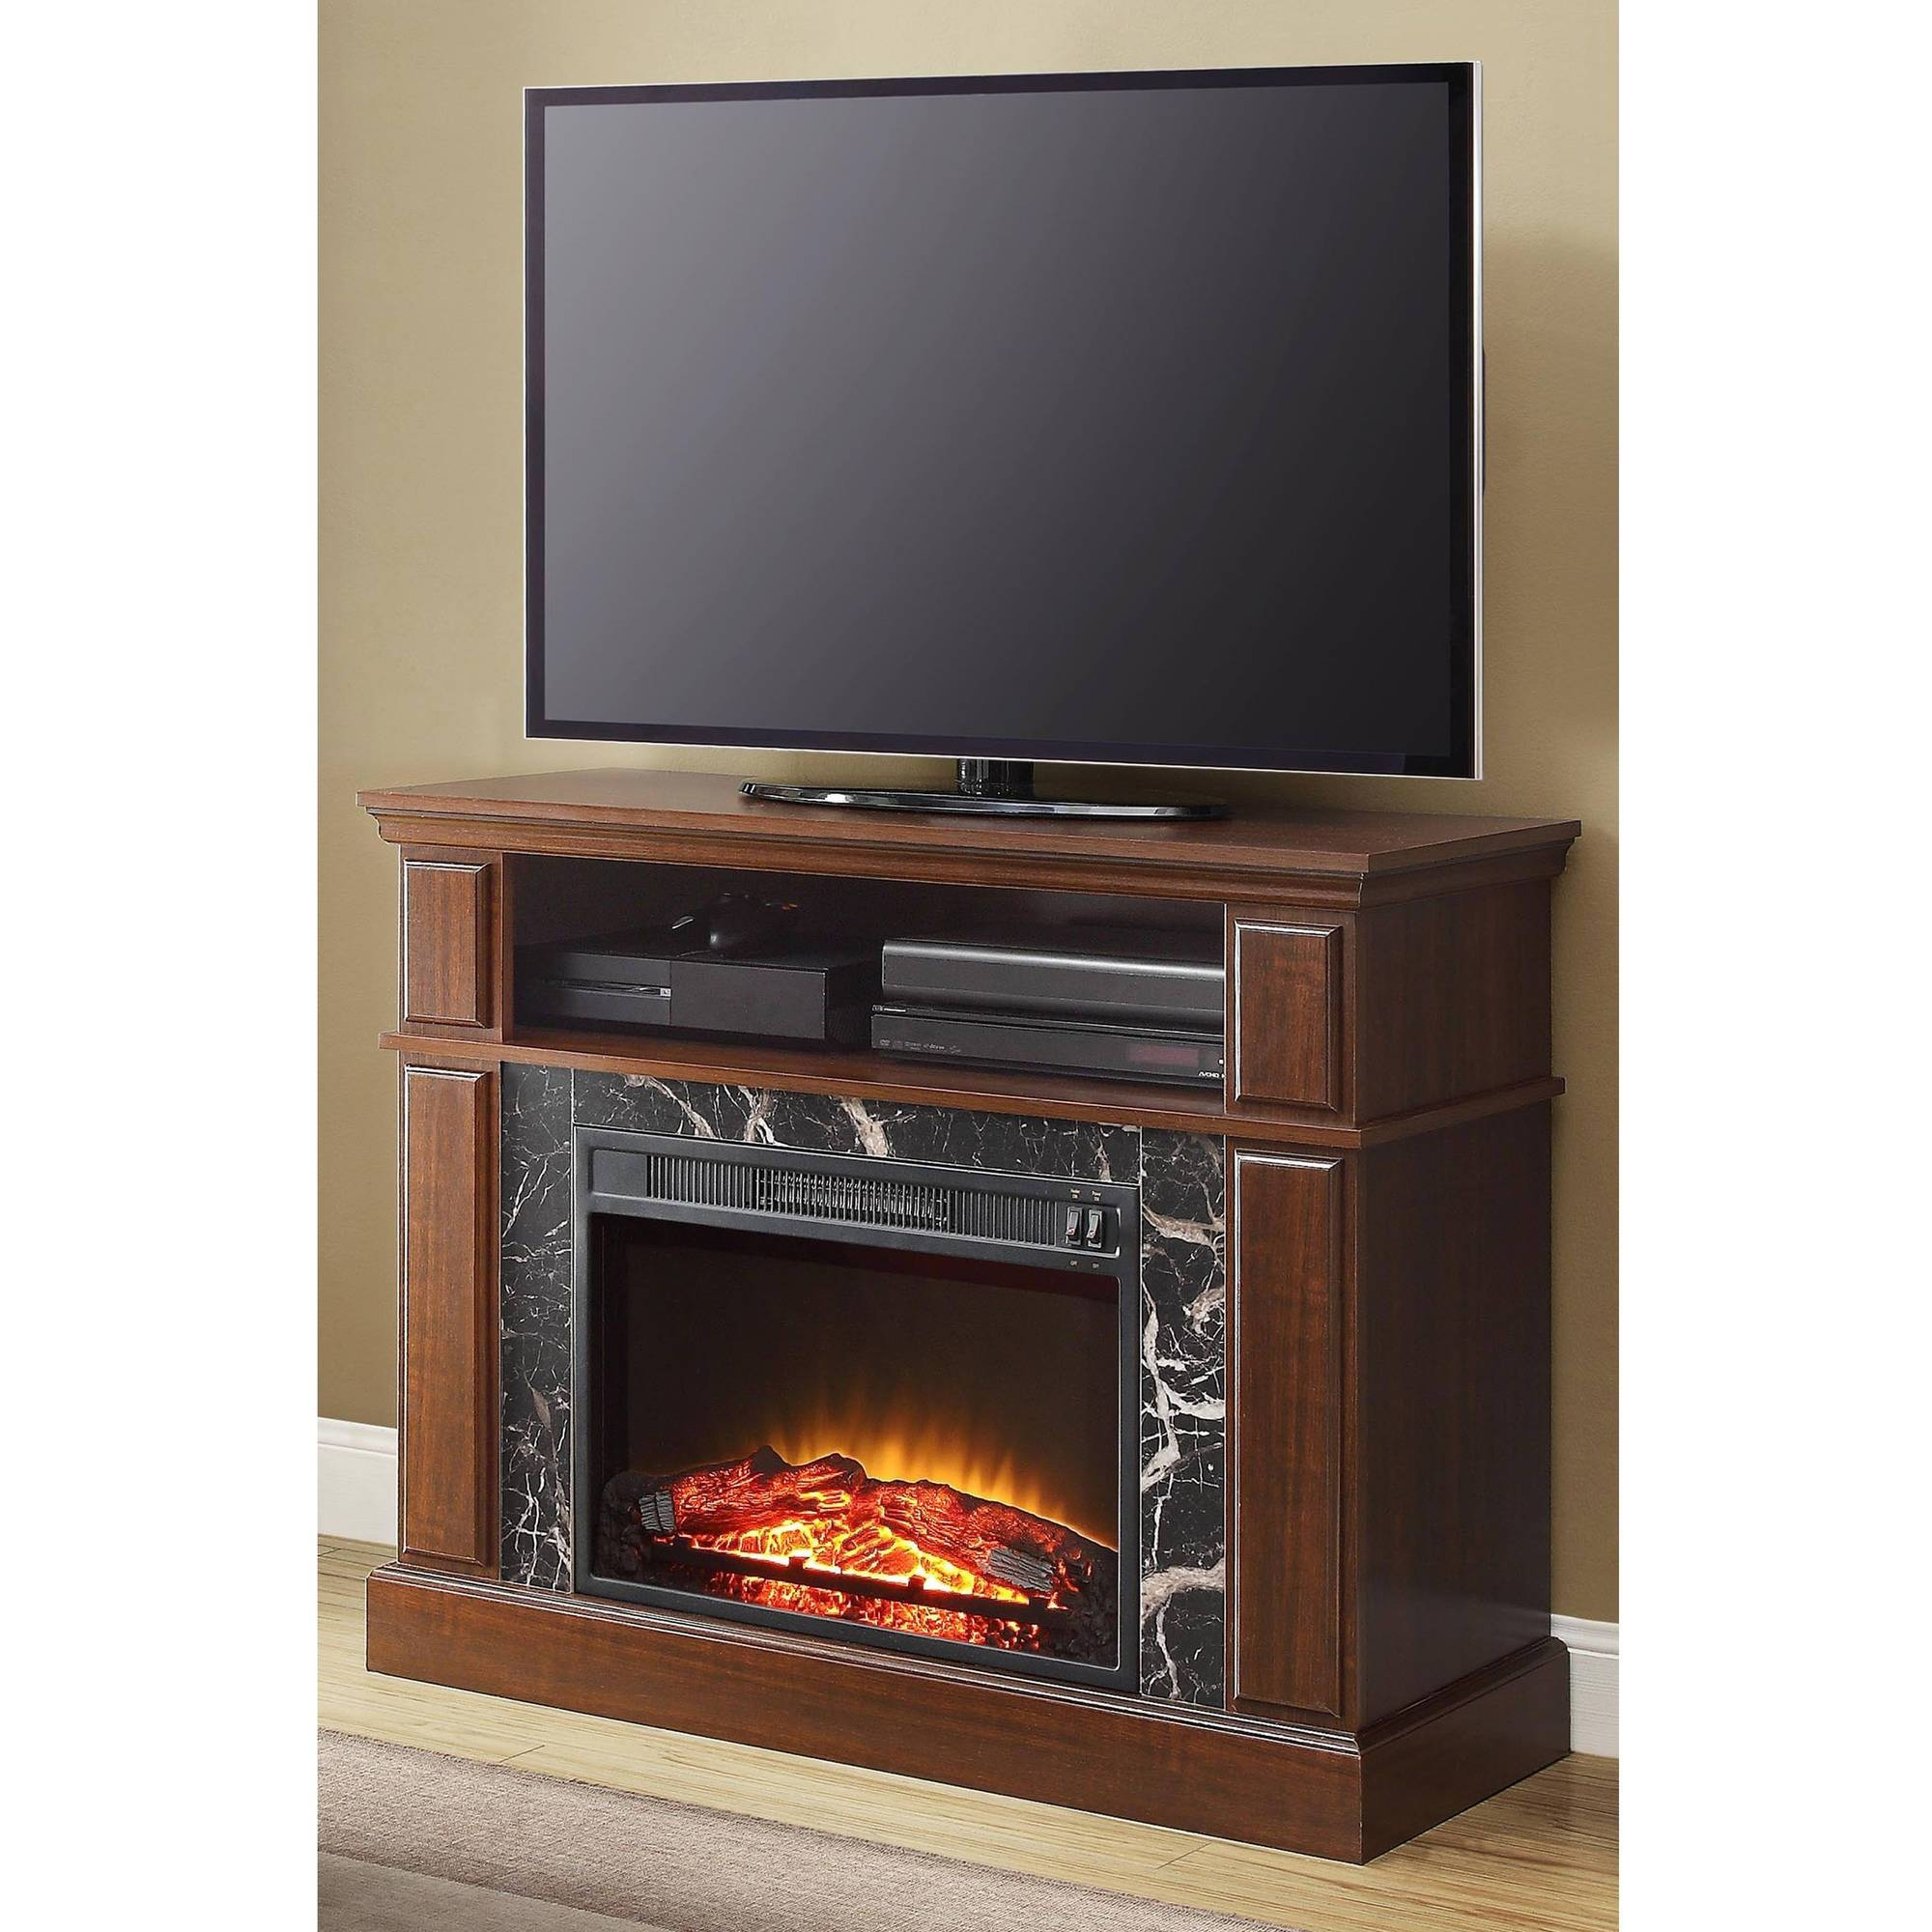 Tv Stands & Entertainment Centers - Walmart pertaining to Tv Stands With Storage Baskets (Image 14 of 15)